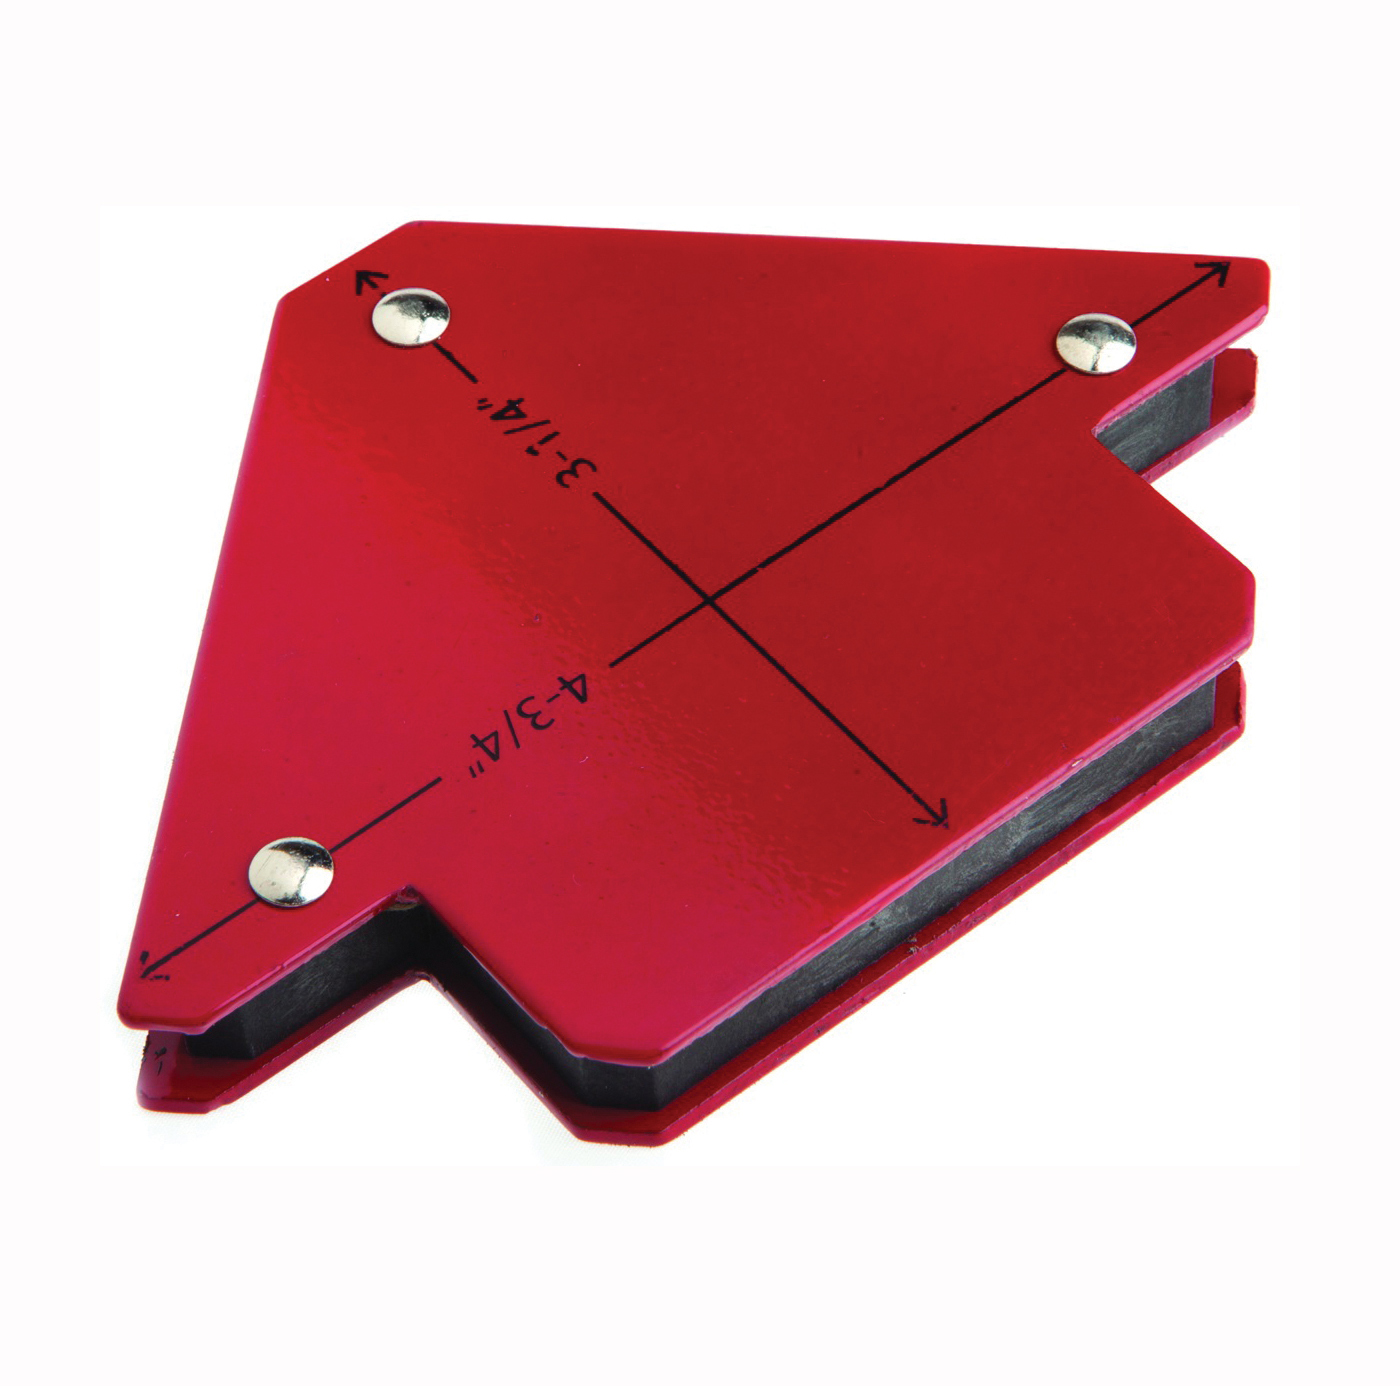 Picture of Forney 70716 Magnetic Welding Jig, 25 lb Max Pull Capacity